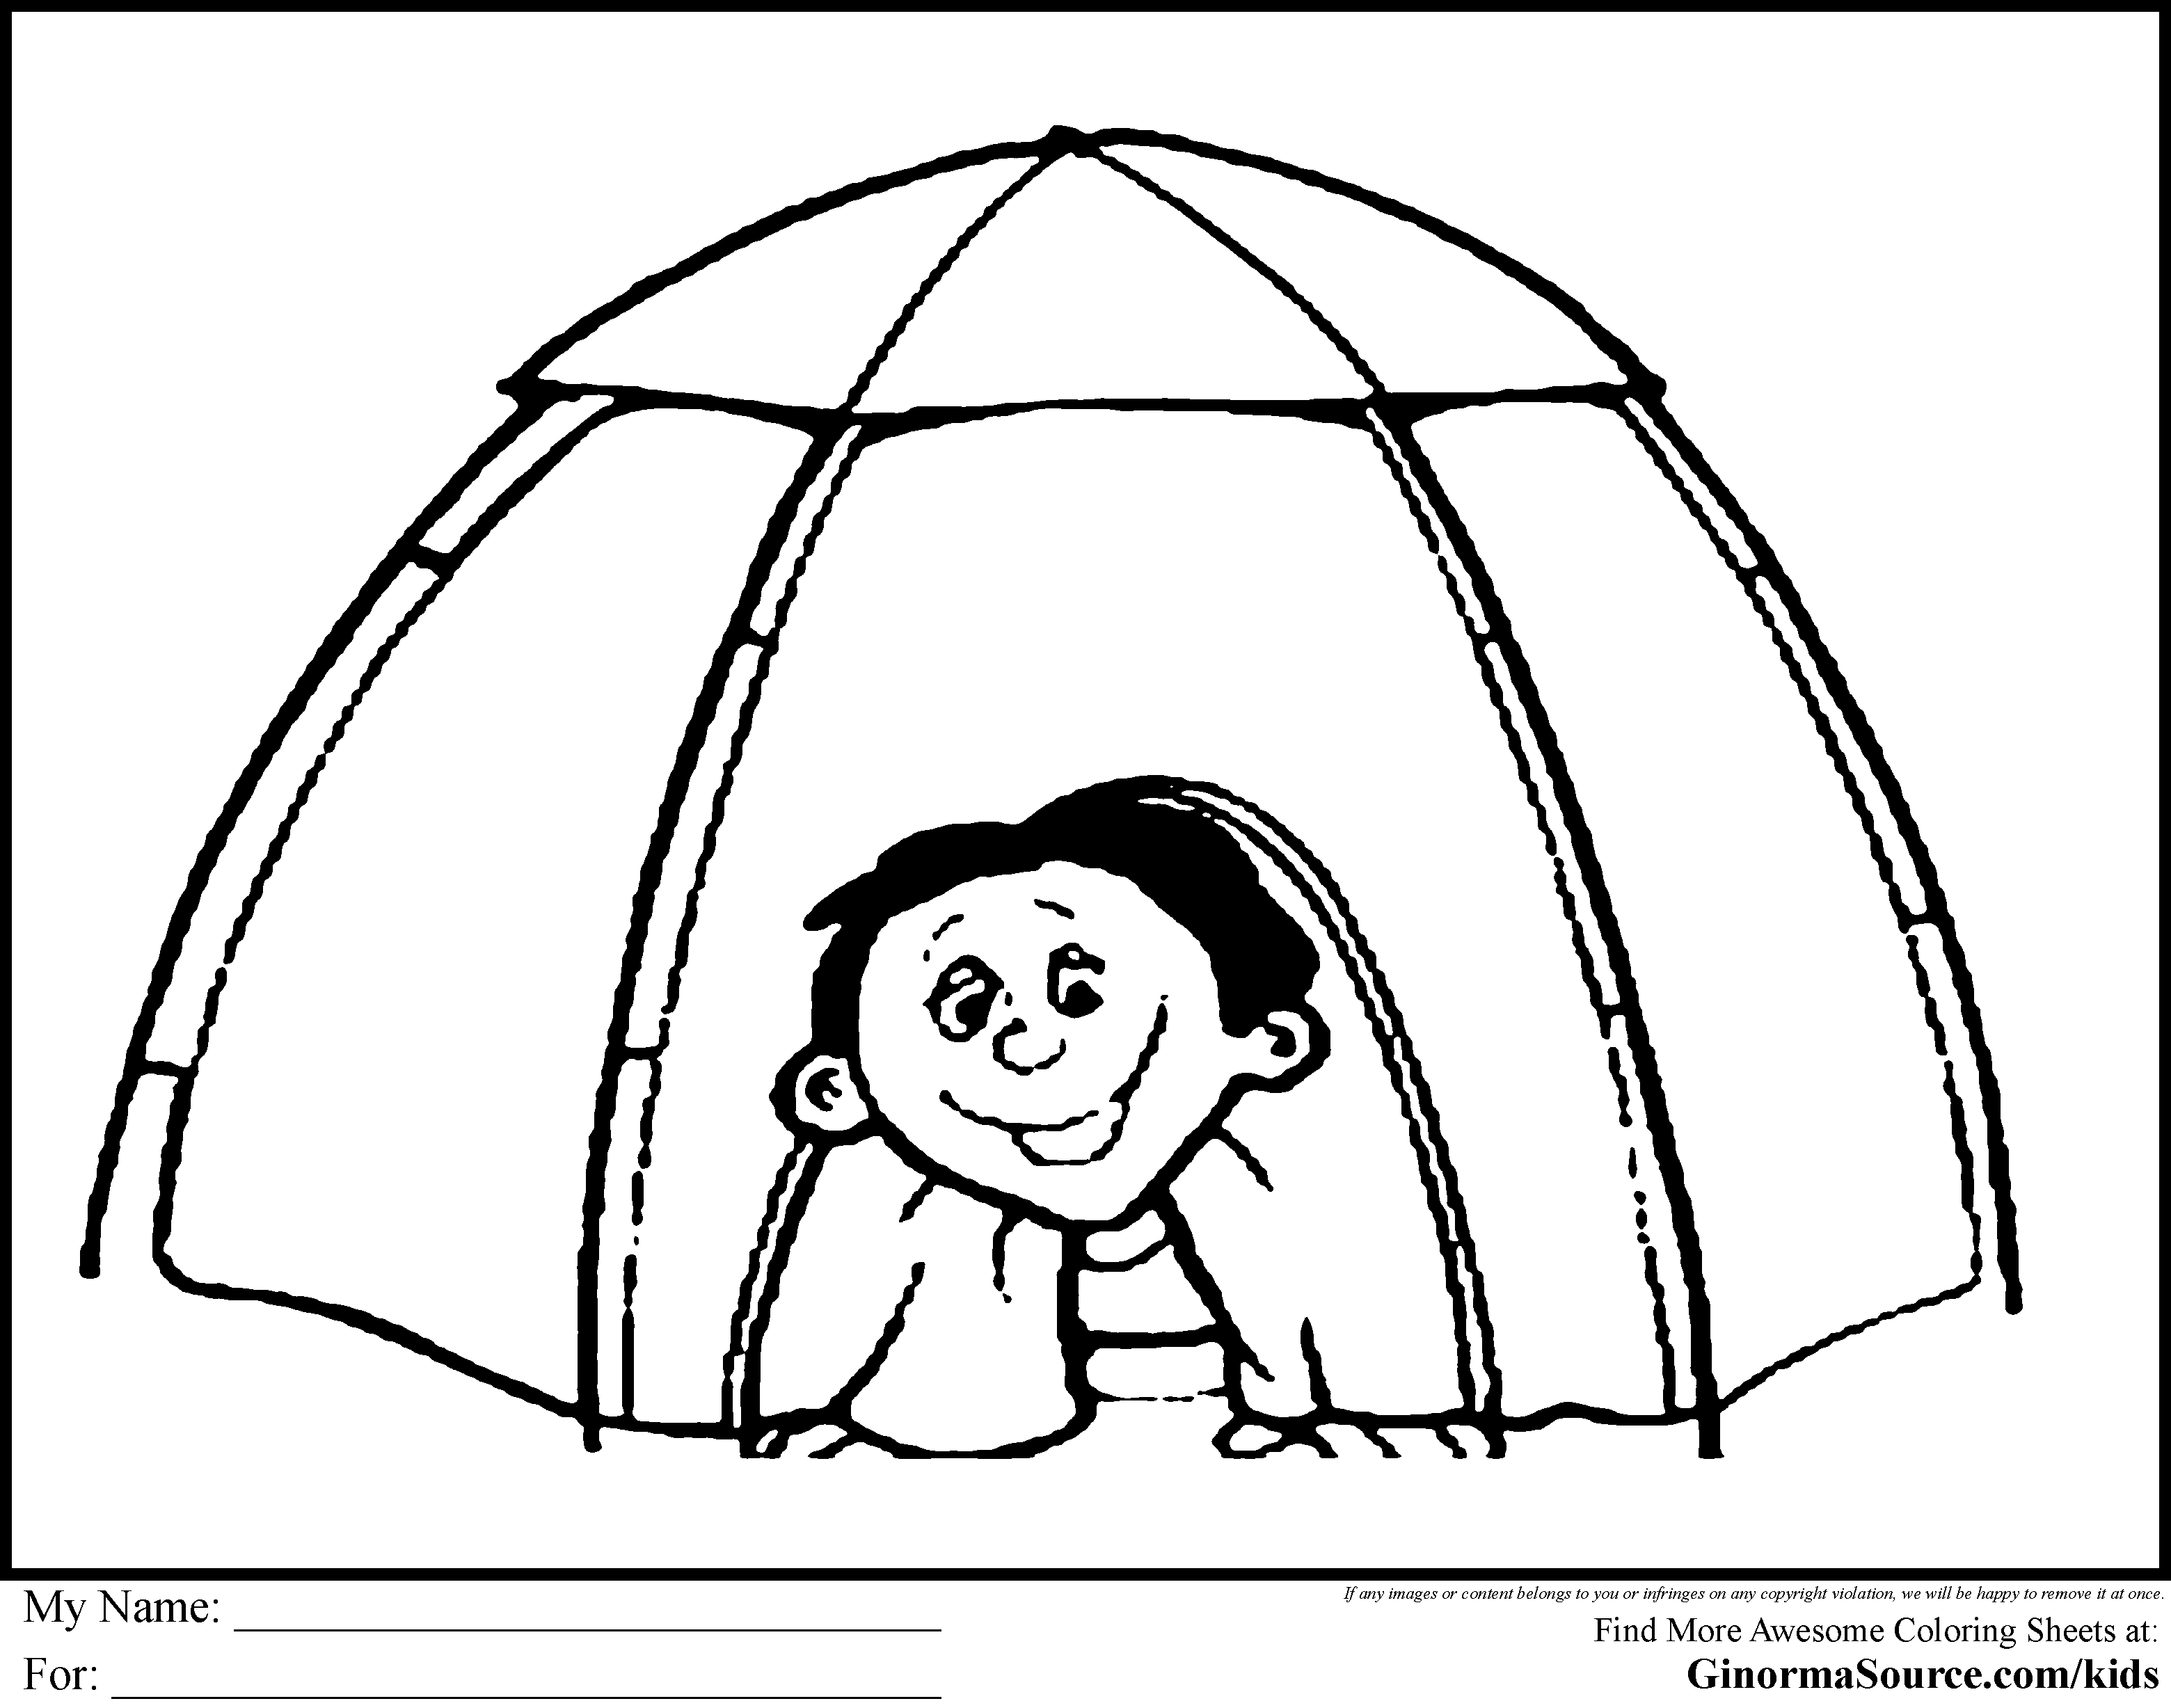 Chinese new year coloring page (With images) | Chinese new year ... | 2455x3120